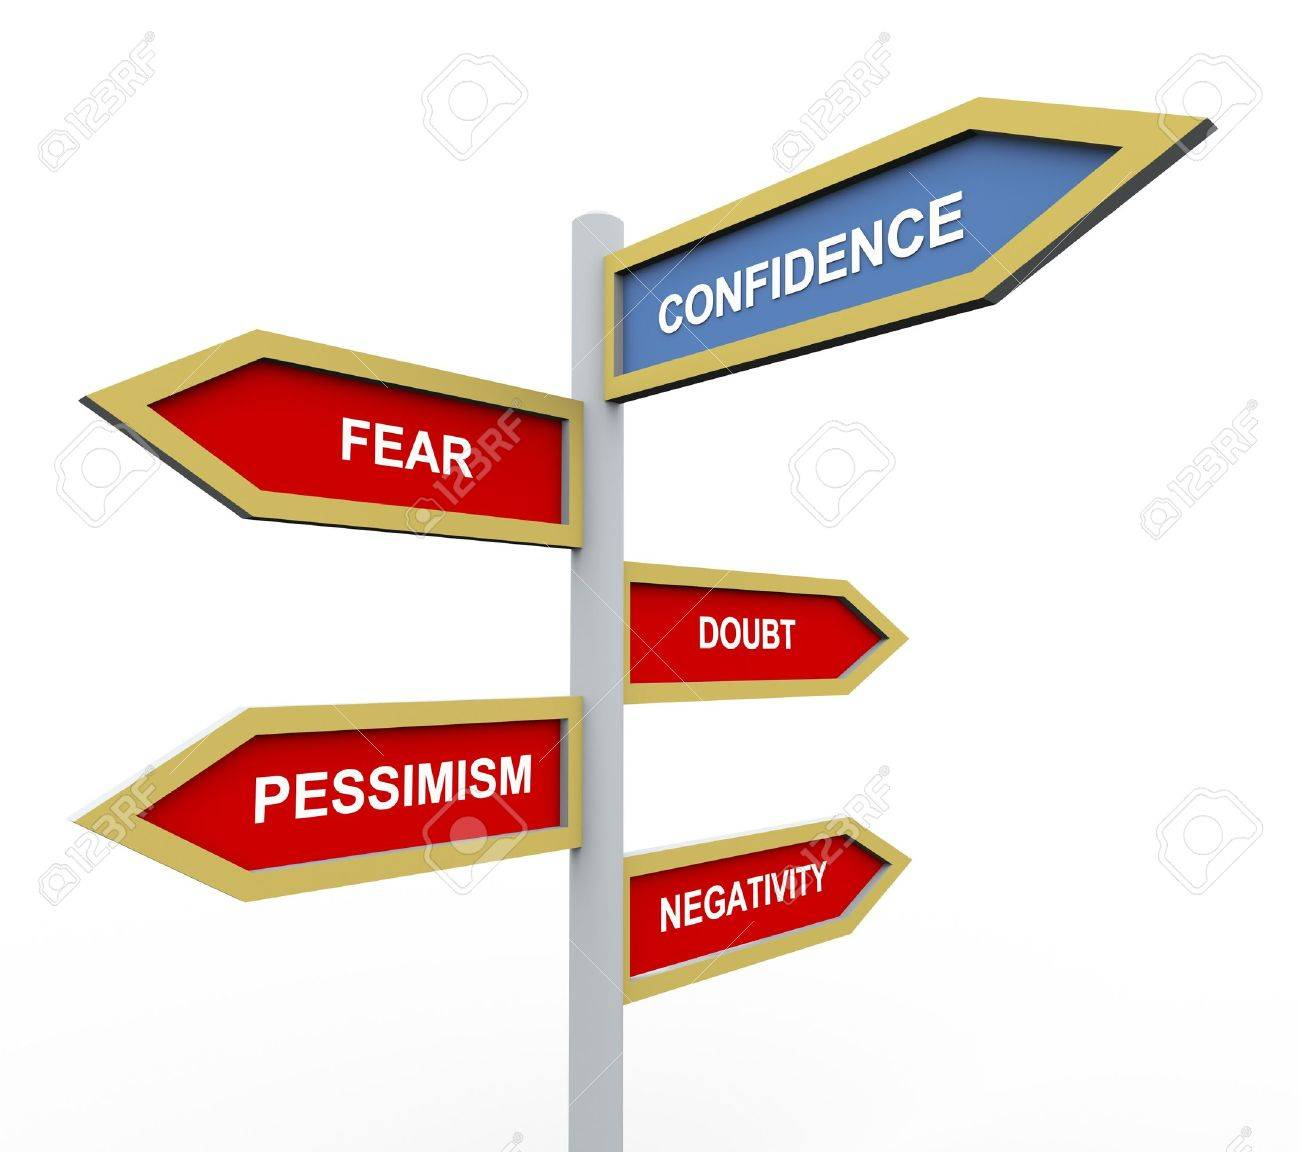 3d road sign of text 'confidence' with other negative thinking words. Stock Photo - 10743768